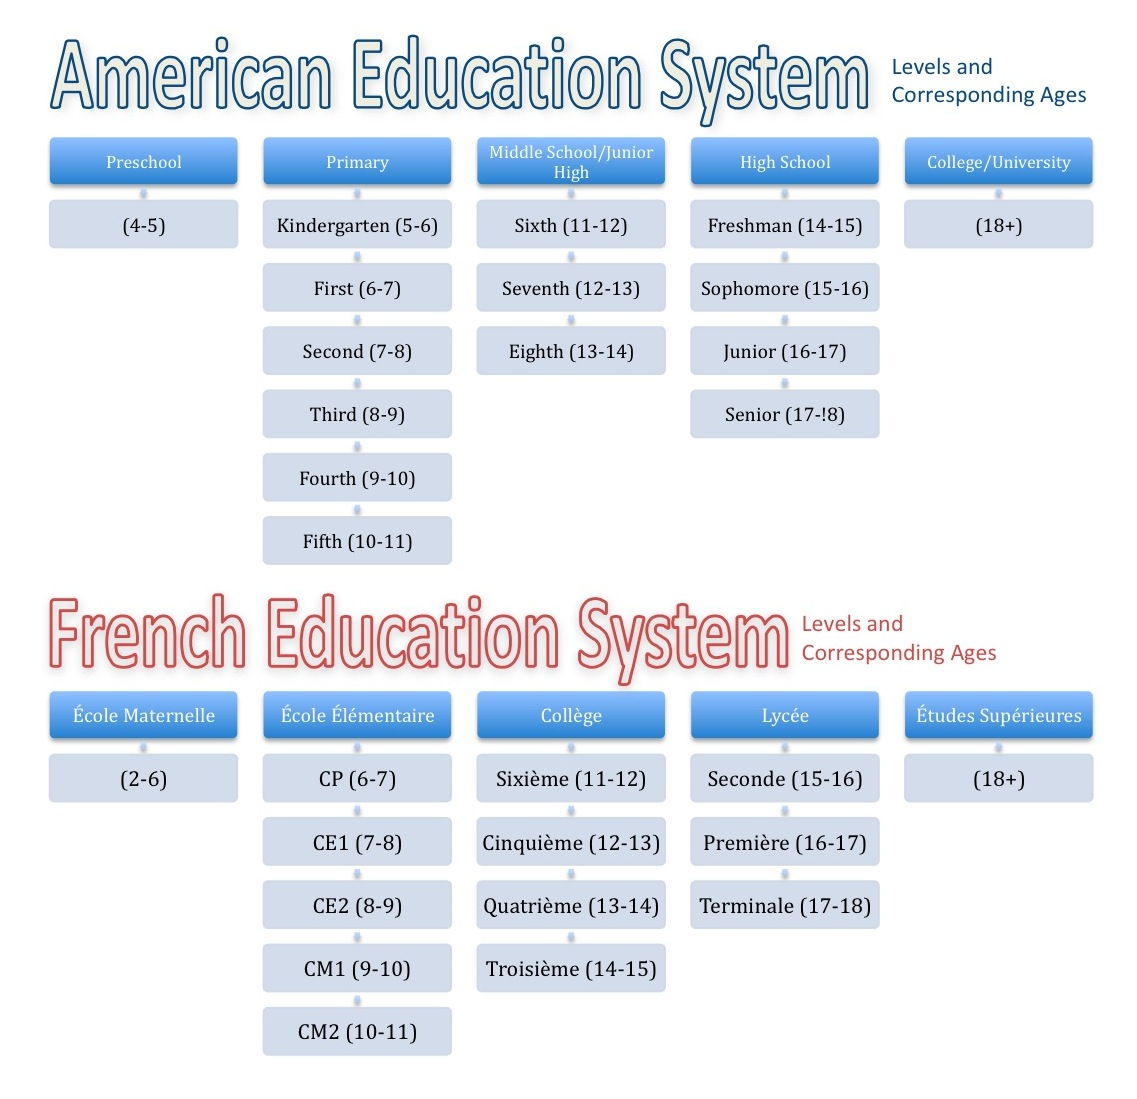 The American Education System